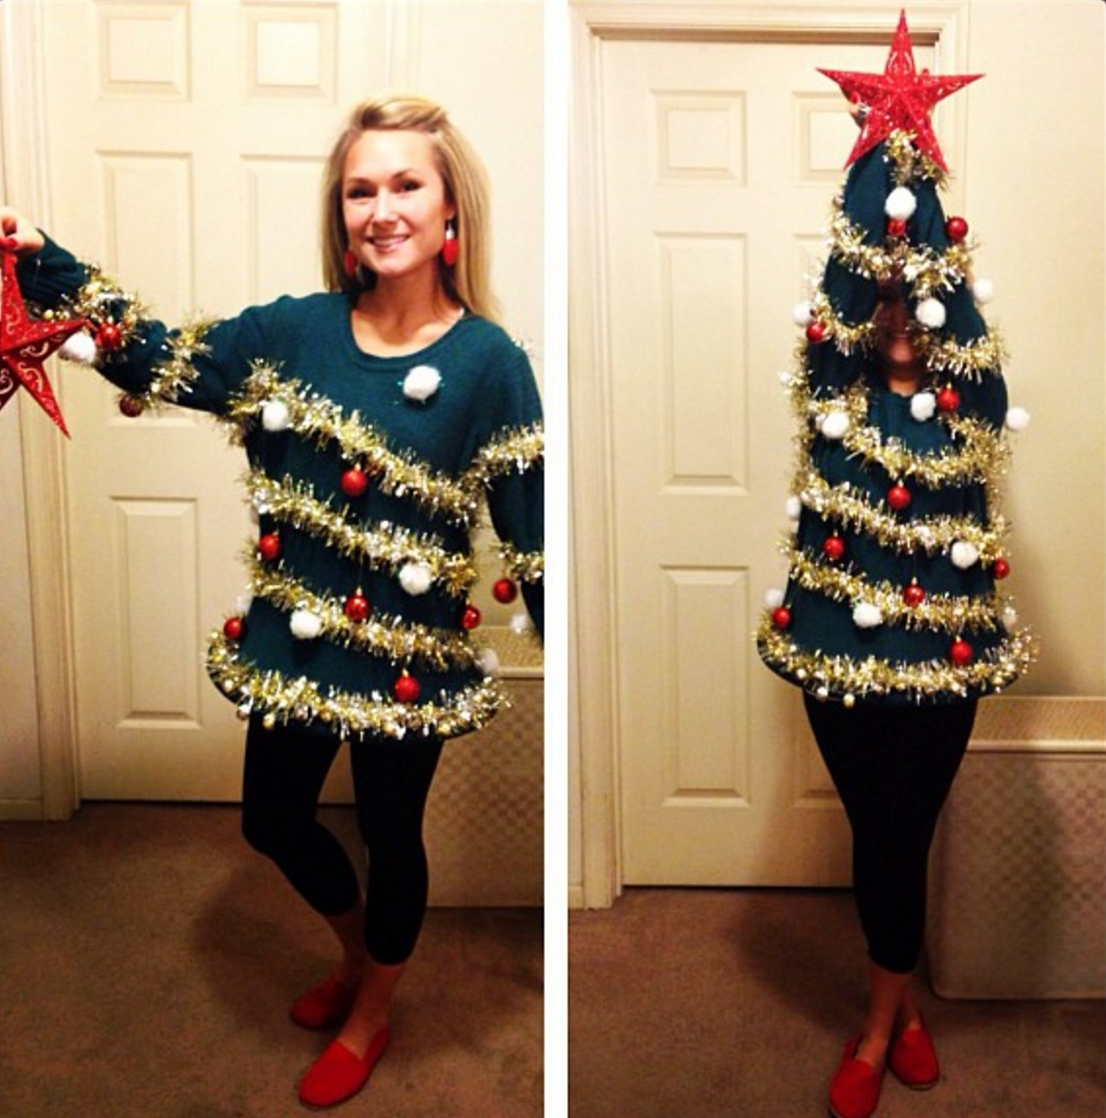 12 tips for throwing a tacky christmas sweater party » apartment